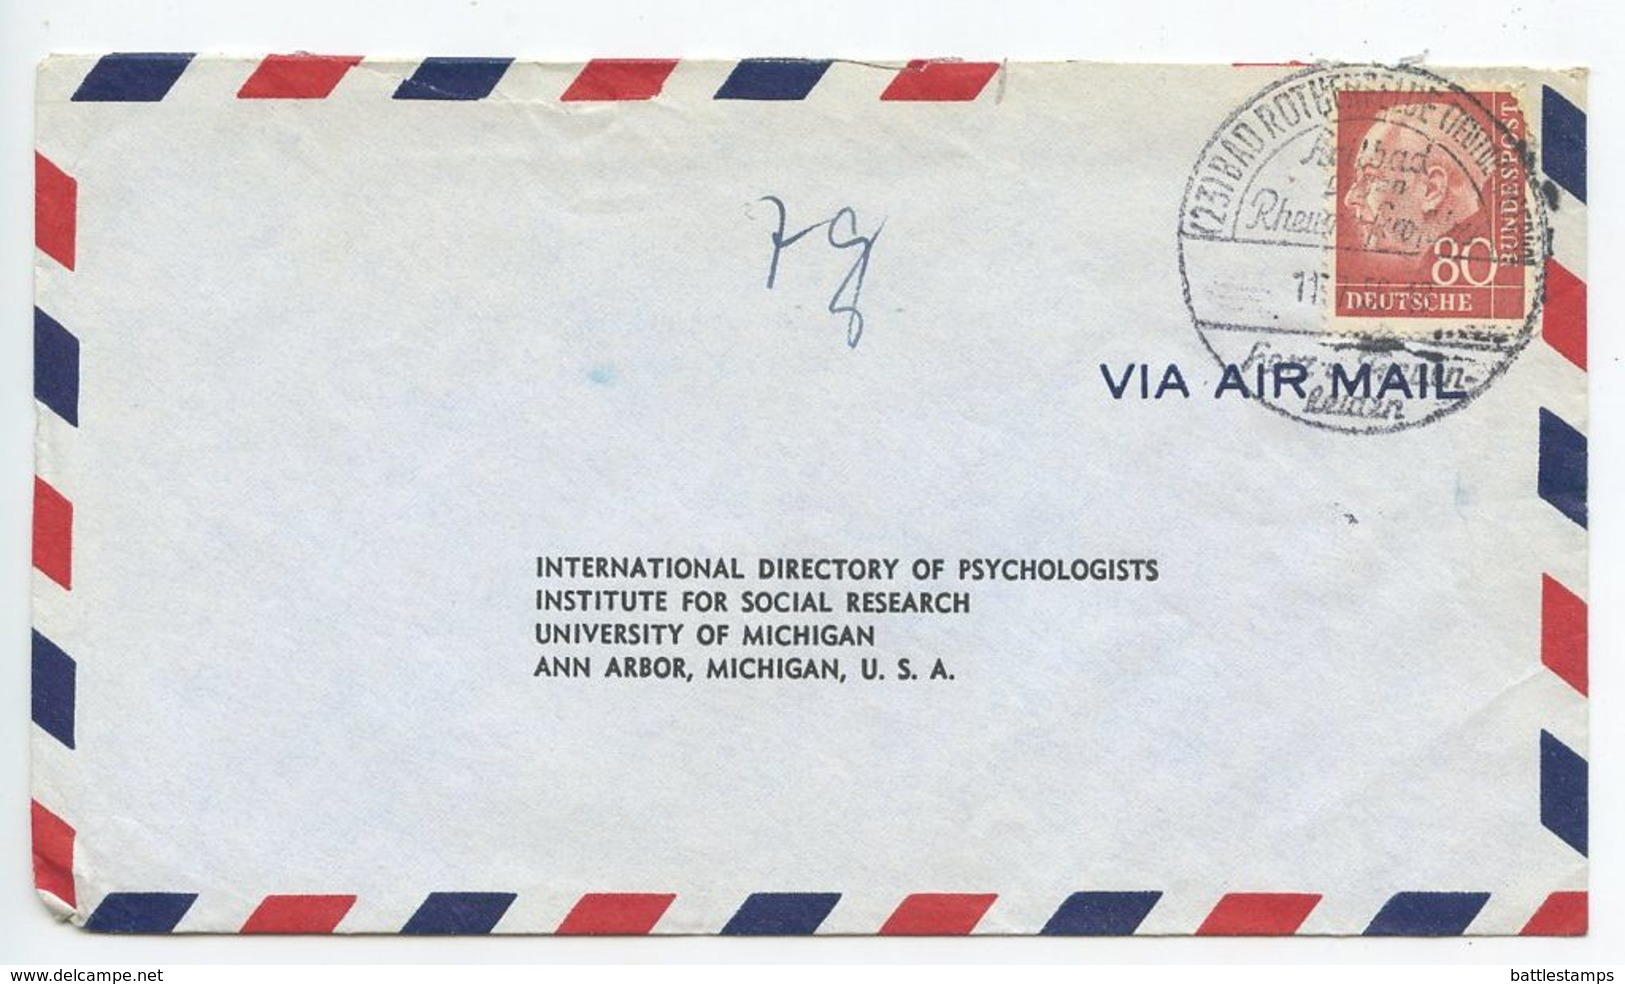 Germany, West 1956 Airmail Cover Bad Rothenfelde To Ann Arbor MI, Scott 717 Heuss - [7] Federal Republic